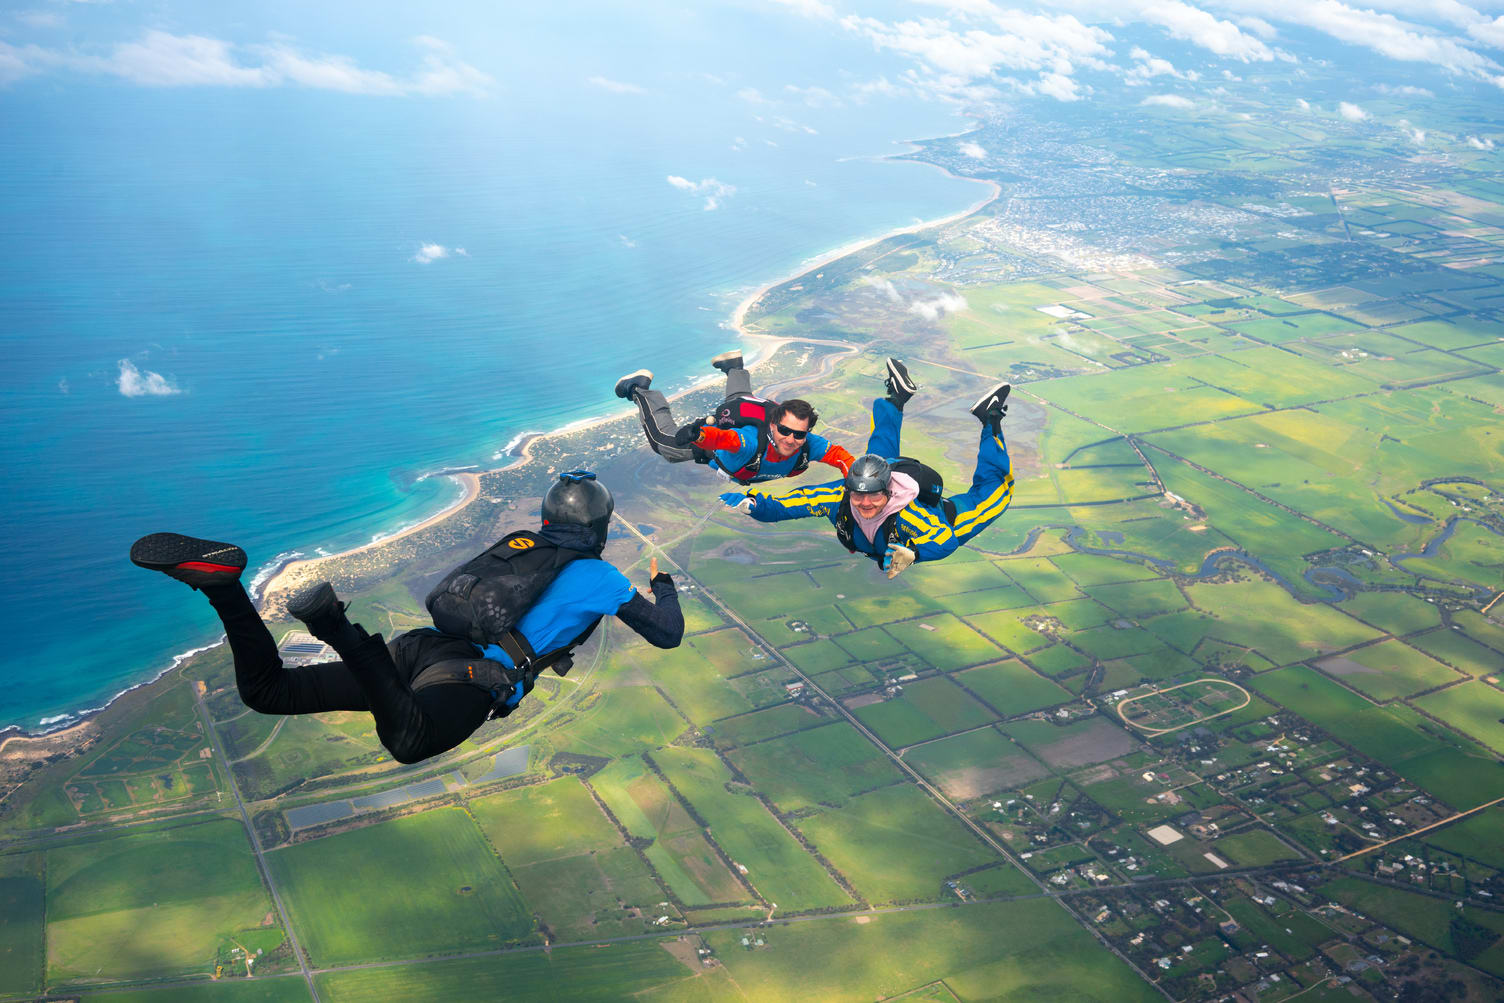 Tandem Skydive Up To 12,000ft - Barwon Heads, Great Ocean Road